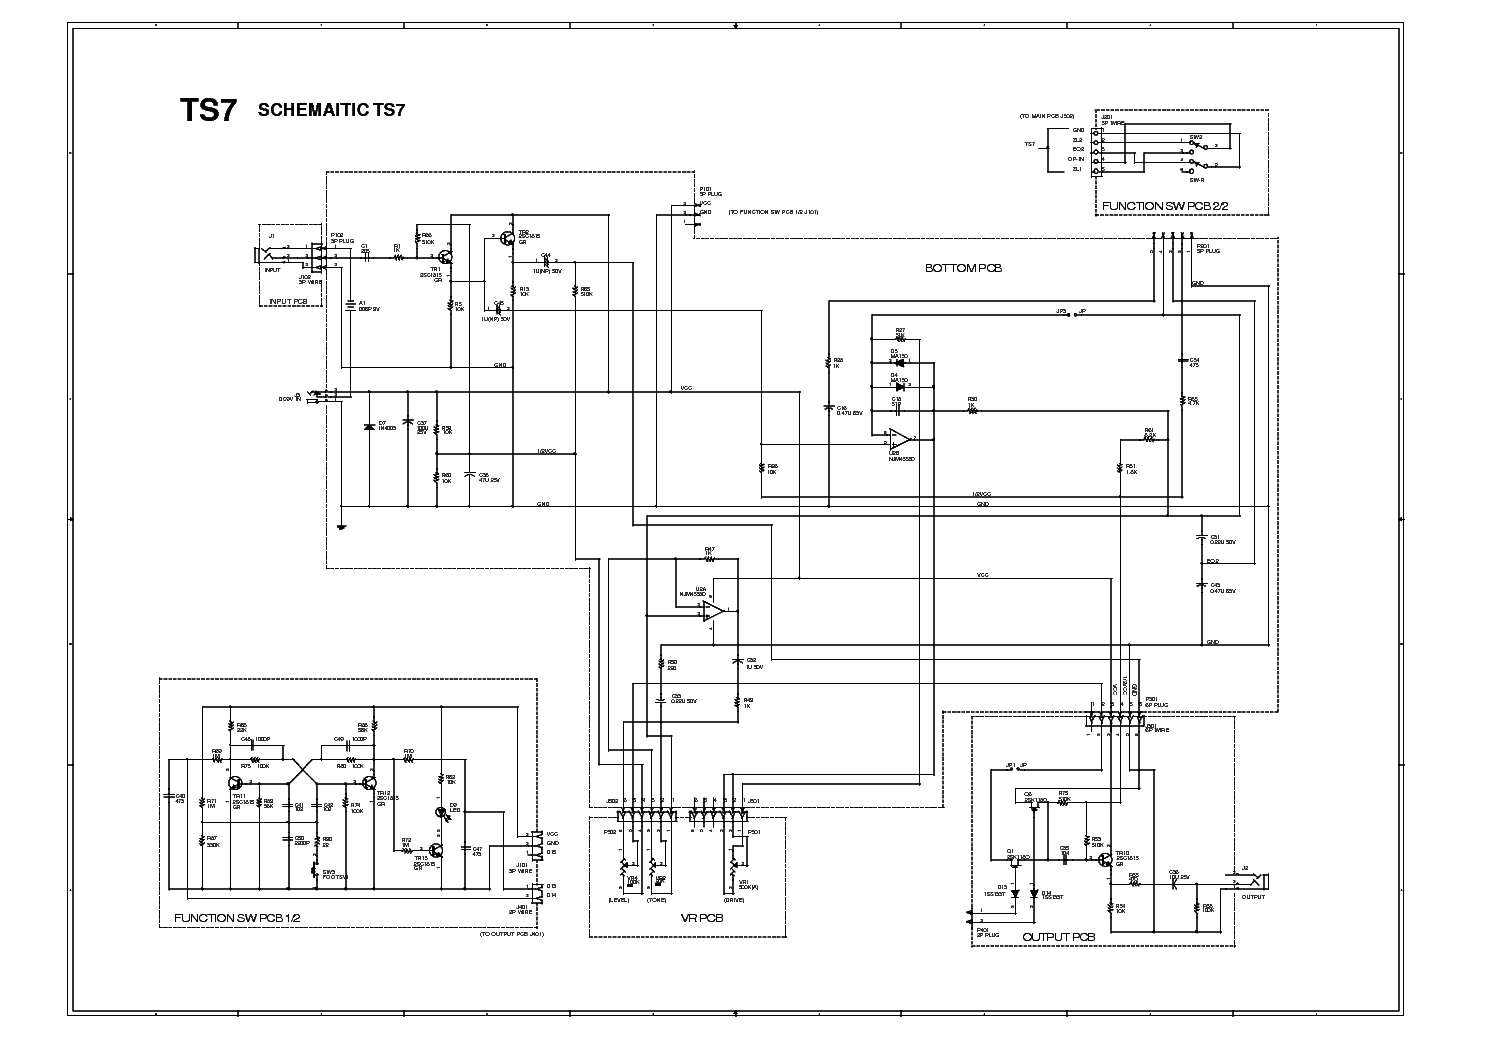 ibanez ts schematic related keywords suggestions ibanez ts ibanez ts7 schematic get image about wiring diagram